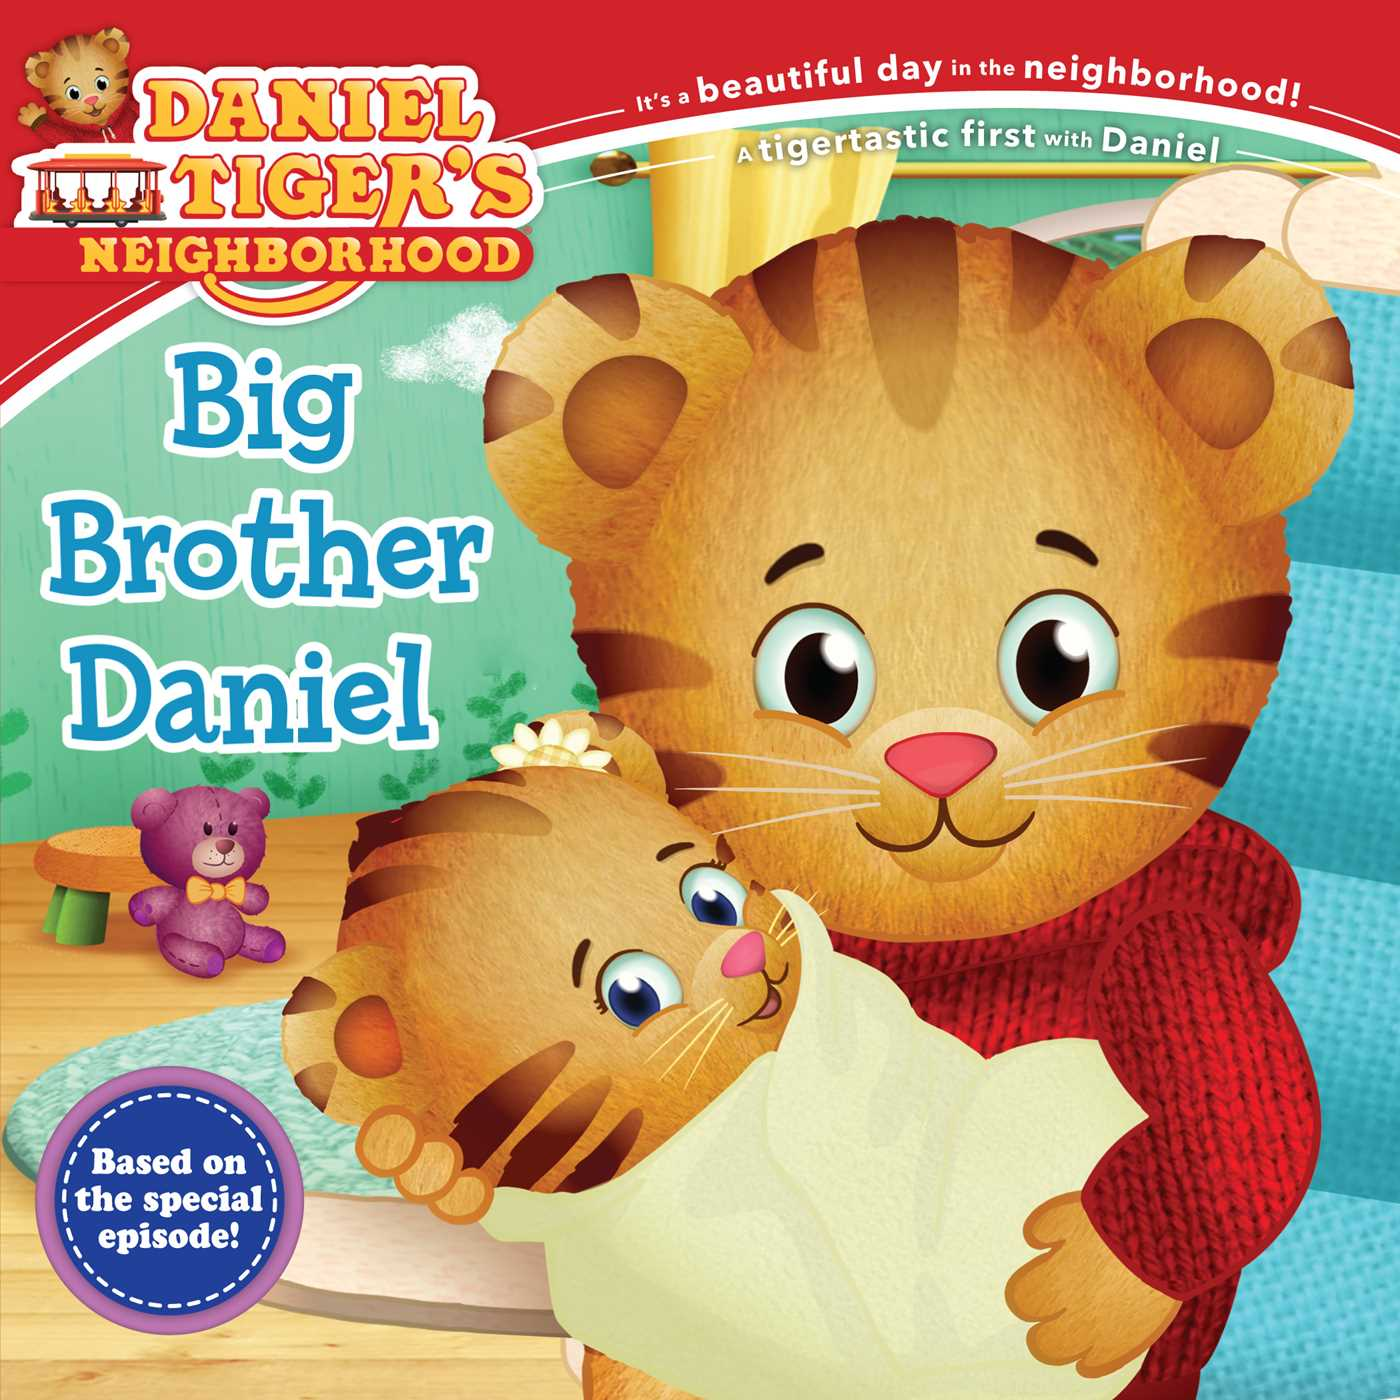 Big-brother-daniel-9781481431729_hr